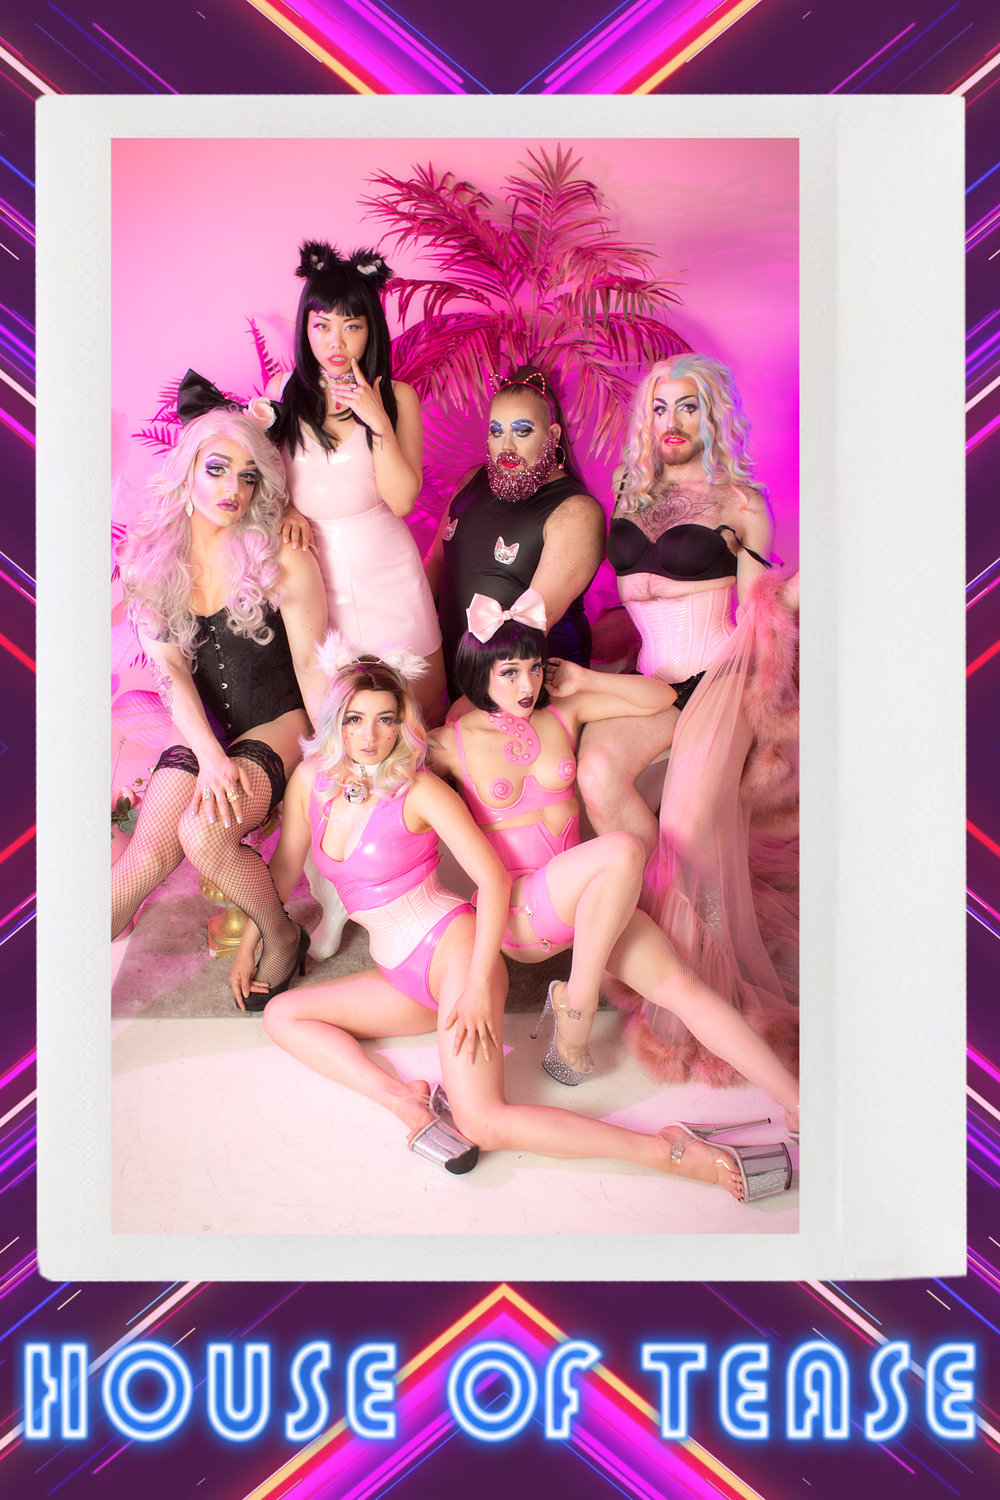 The production team behind Starlight Productions. From left to right (behind to infront), Nikki Ashes, MaybeBaby, Maia Pussy Sparkles, Vanessica Carver, Sacré Bleu and Flowerbomb.   Photographer: Robert Michael Evans